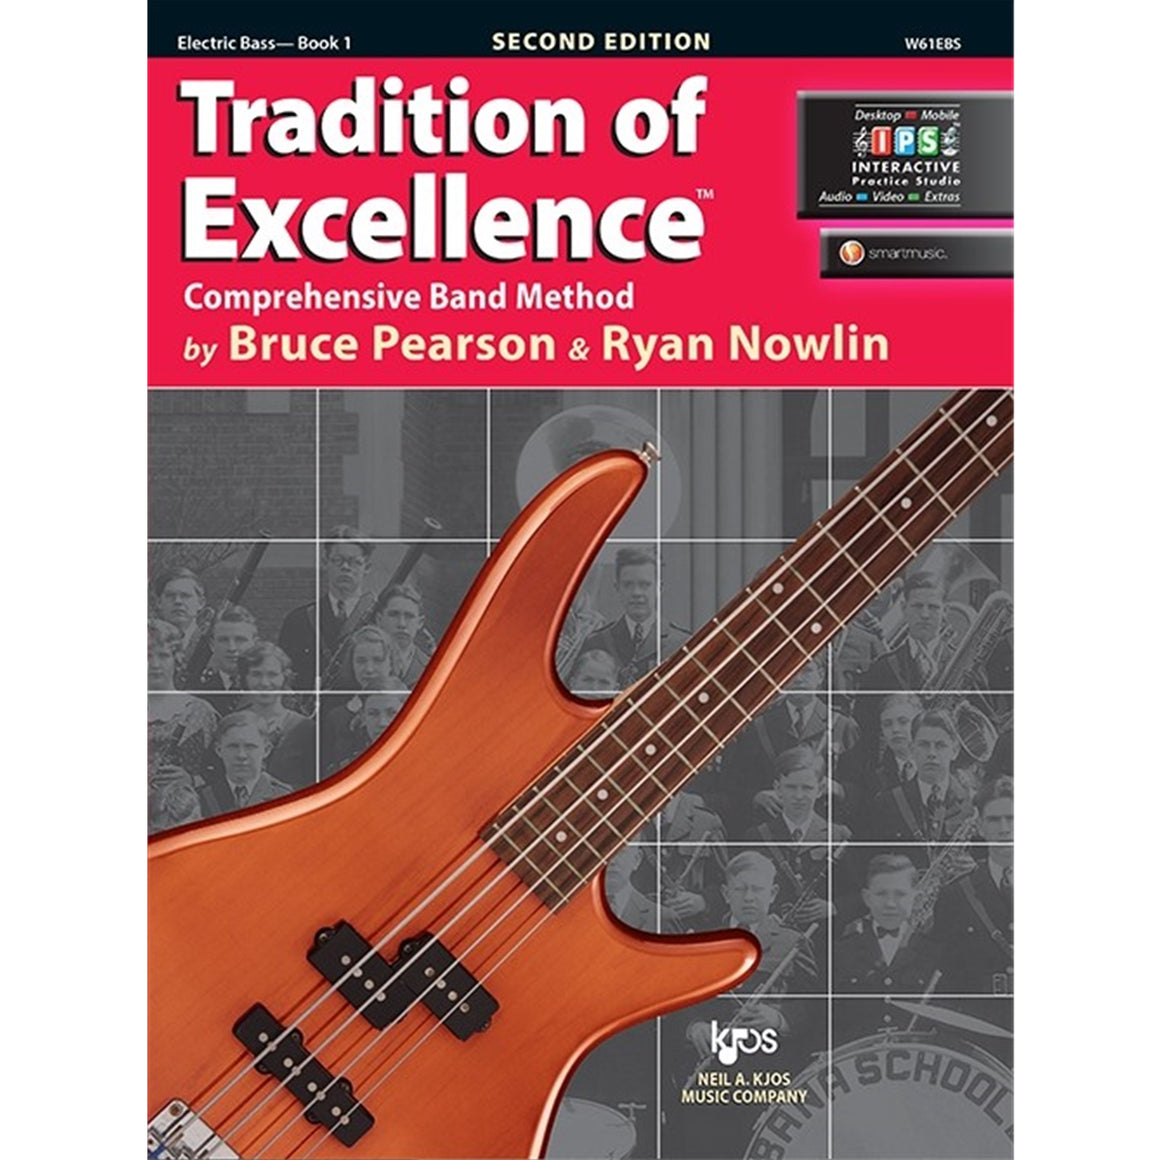 KJOS W61EBS Tradition of Excellence Electric Bass Book 1